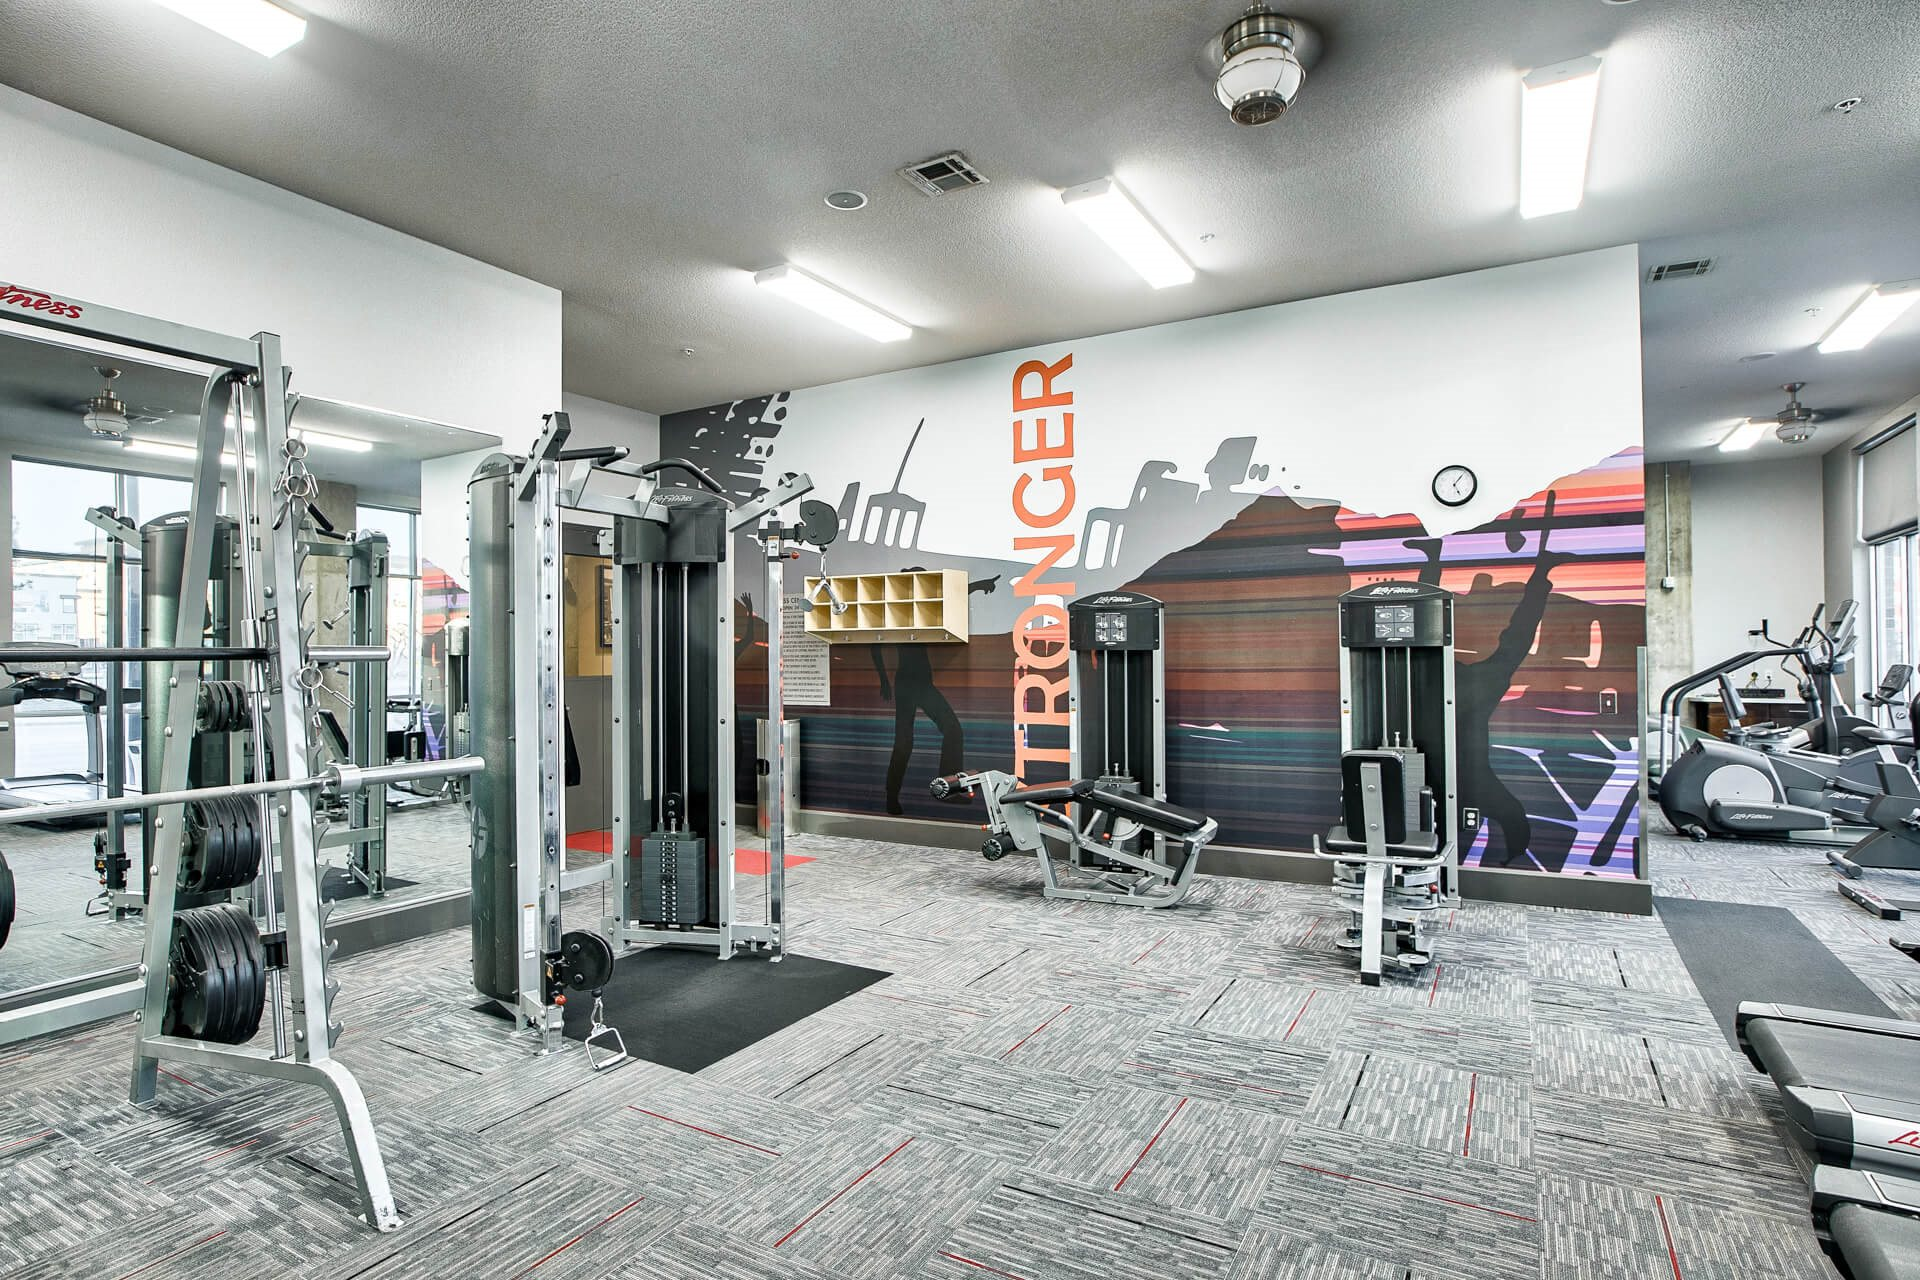 Strength Training Machines In Gym at Windsor at Broadway Station, Colorado, 80210